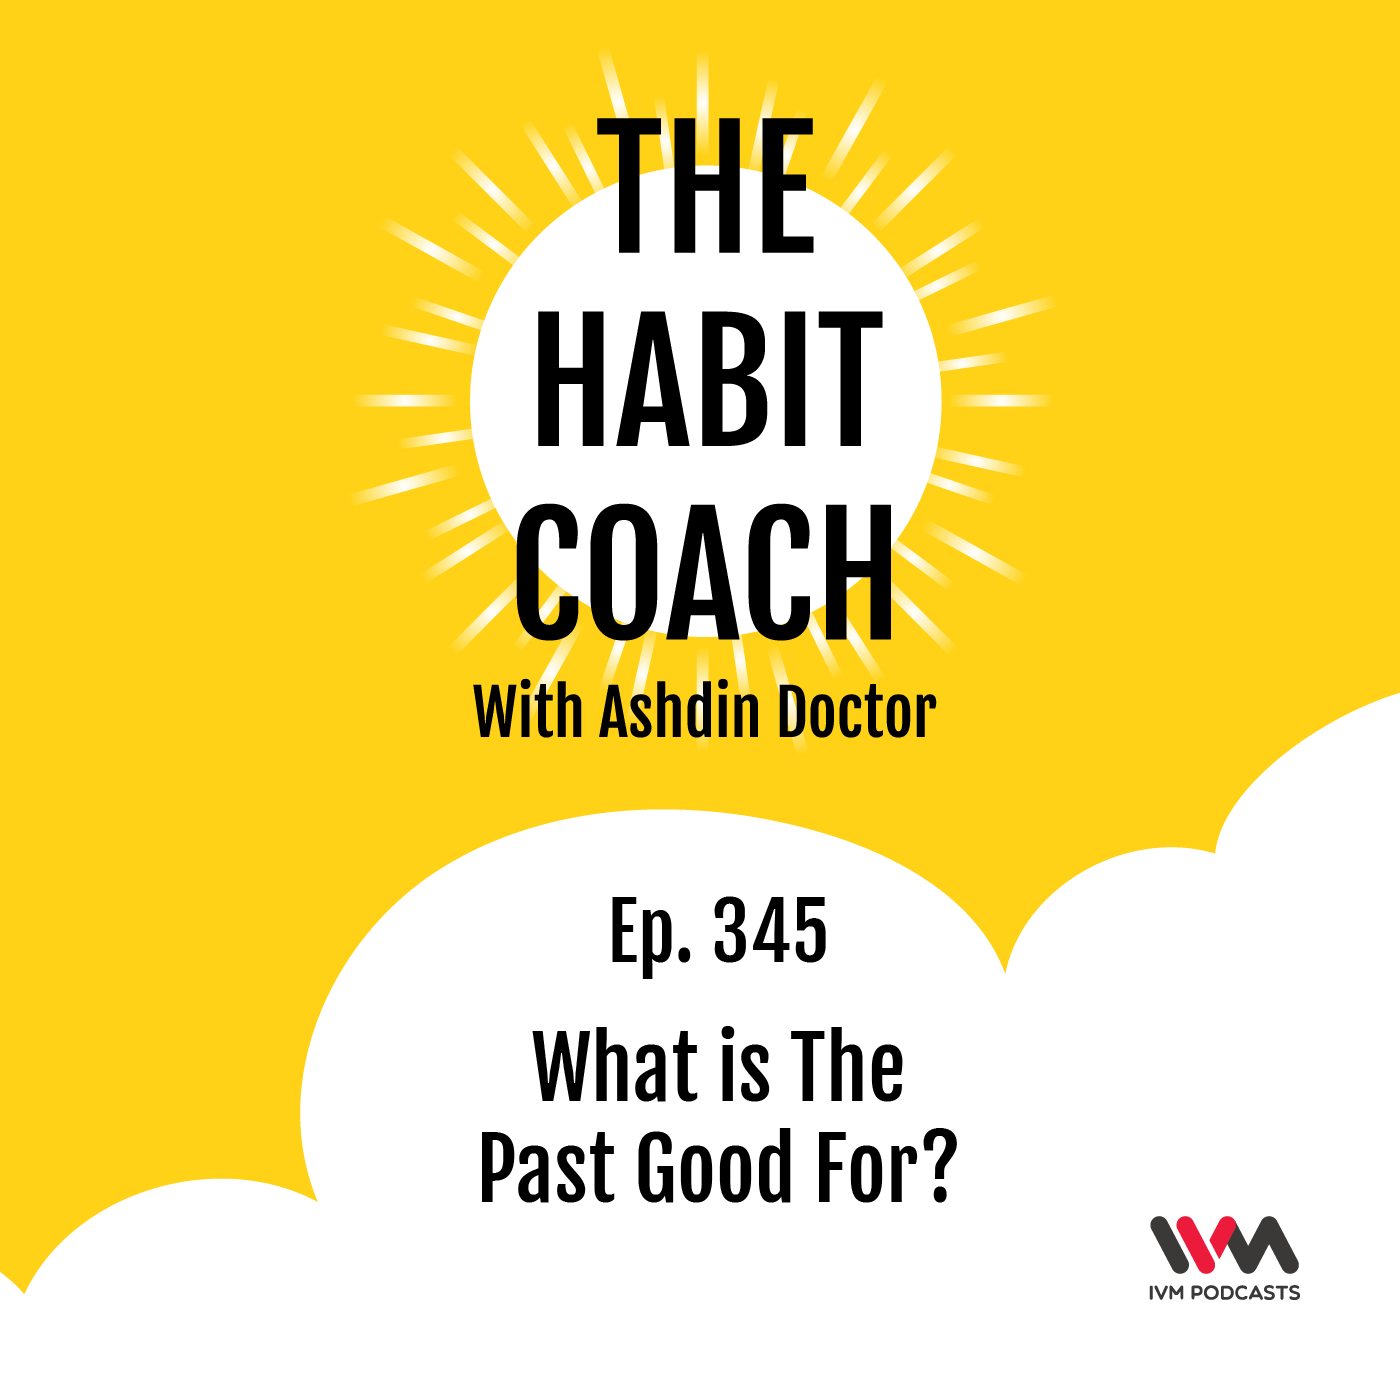 Ep. 345: What is The Past Good For?